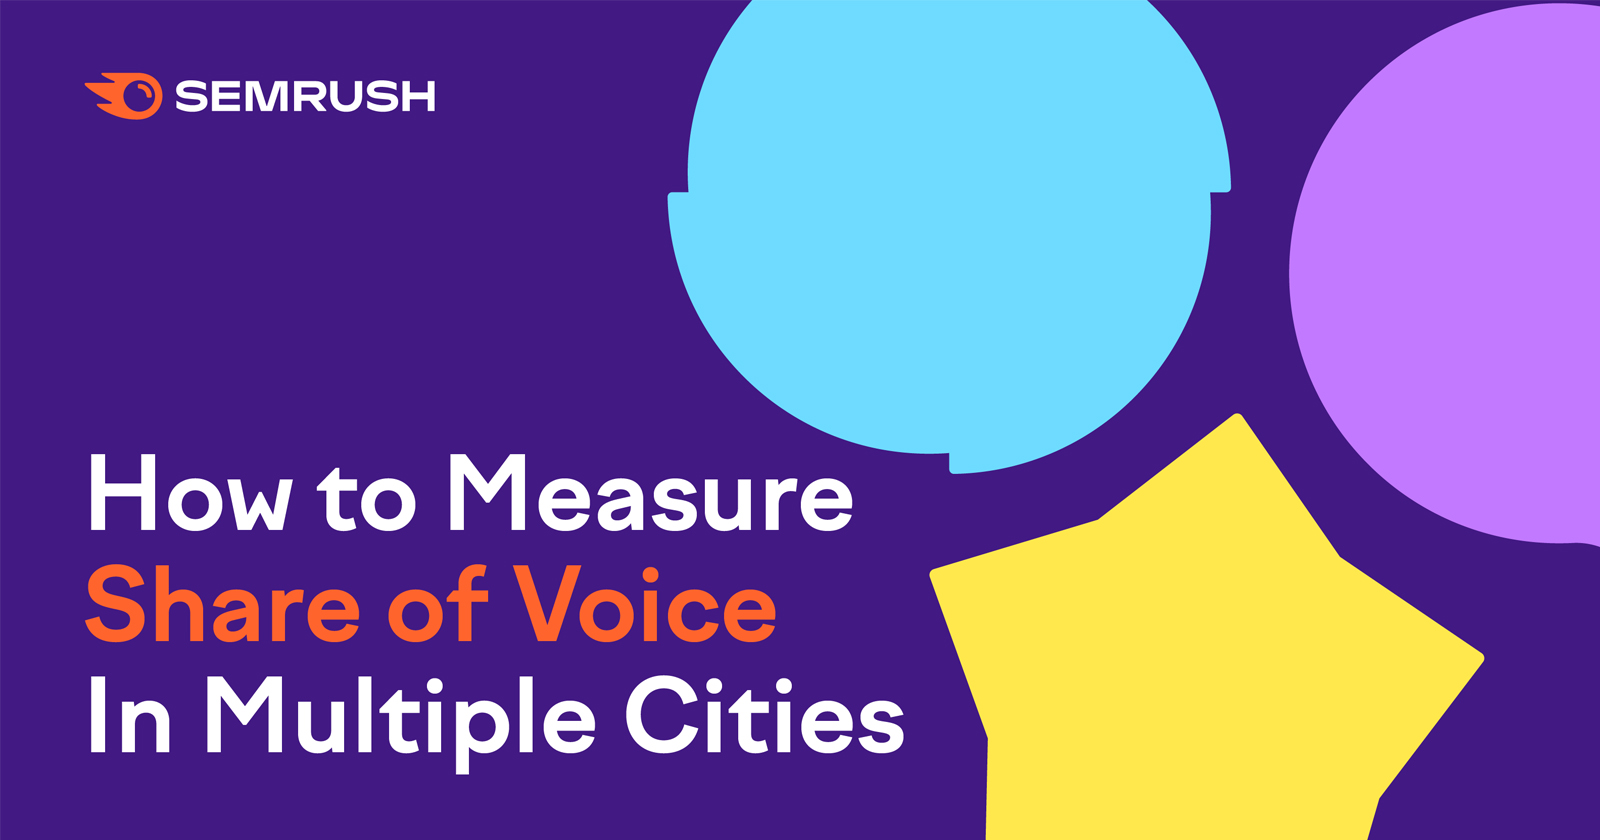 How to Measure Share of Voice in Multiple Cities via @semrush